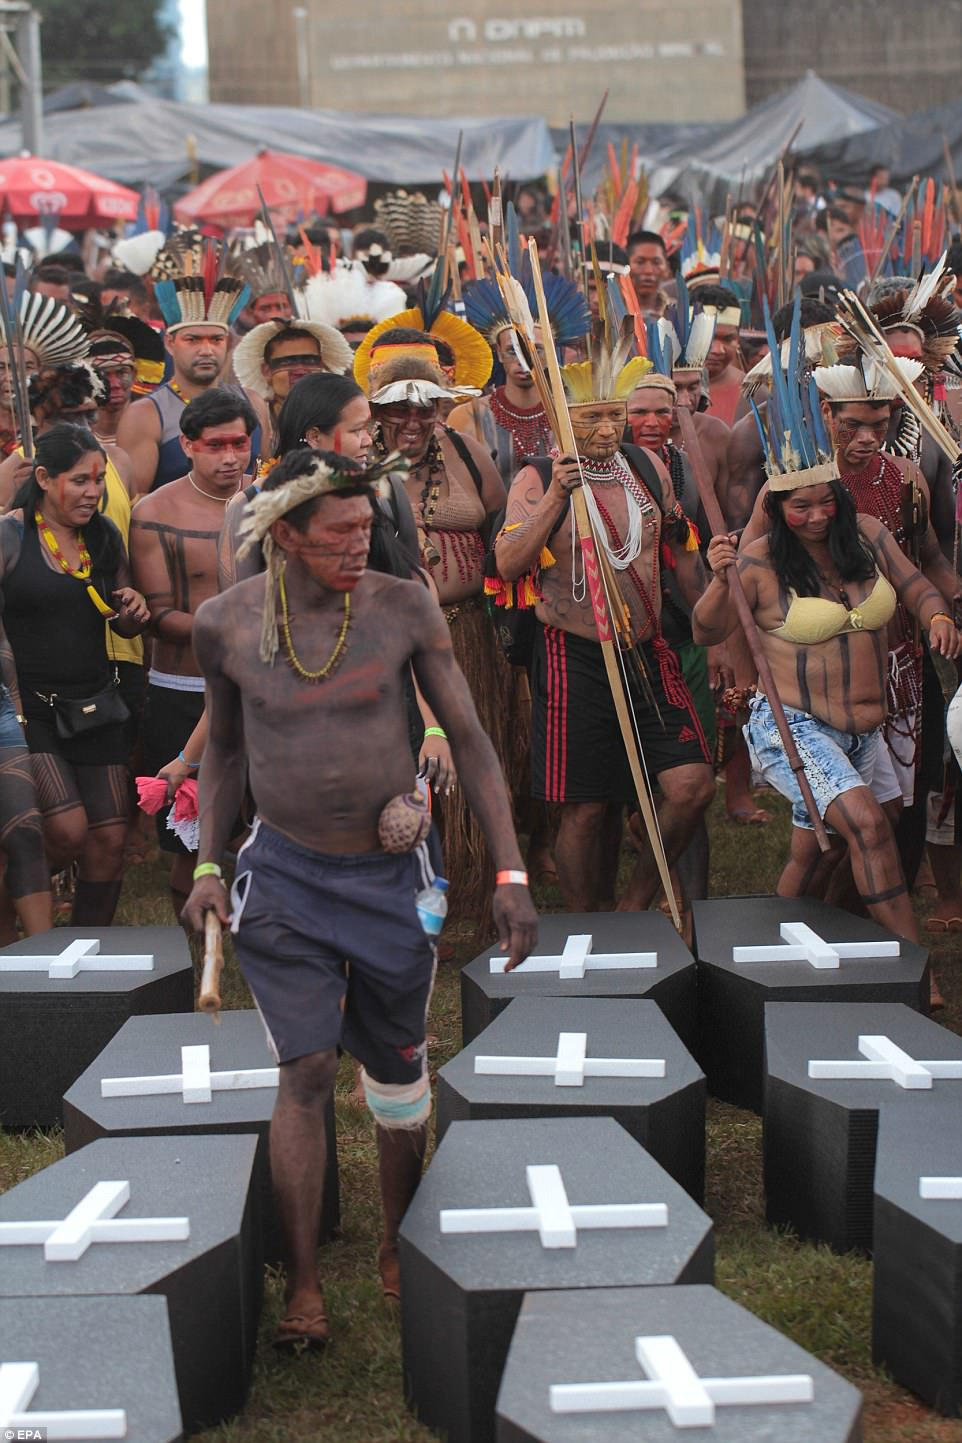 The protest is focused on legislation that would give the last word on deciding land boundaries for indigenous reservations to Congress, where a powerful farm lobby holds sway. Currently, Brazil's president retains the power to set such boundaries